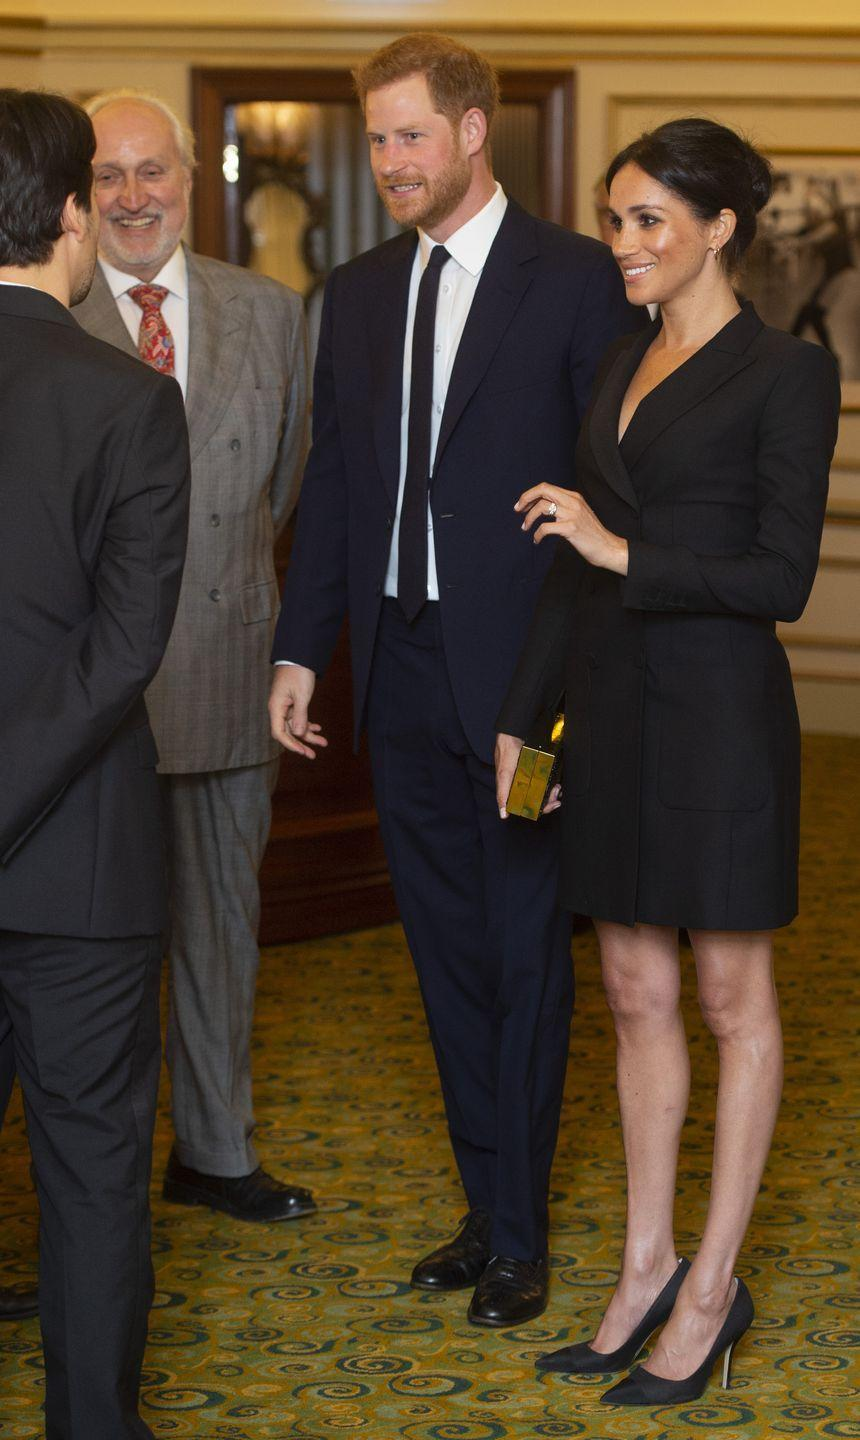 <p>Yet again, Meg's legs caused a stir. This time, it was the tuxedo dress the Duchess wore to a performance of <em>Hamilton </em>that had people saying she broke protocol with a short hem. </p>